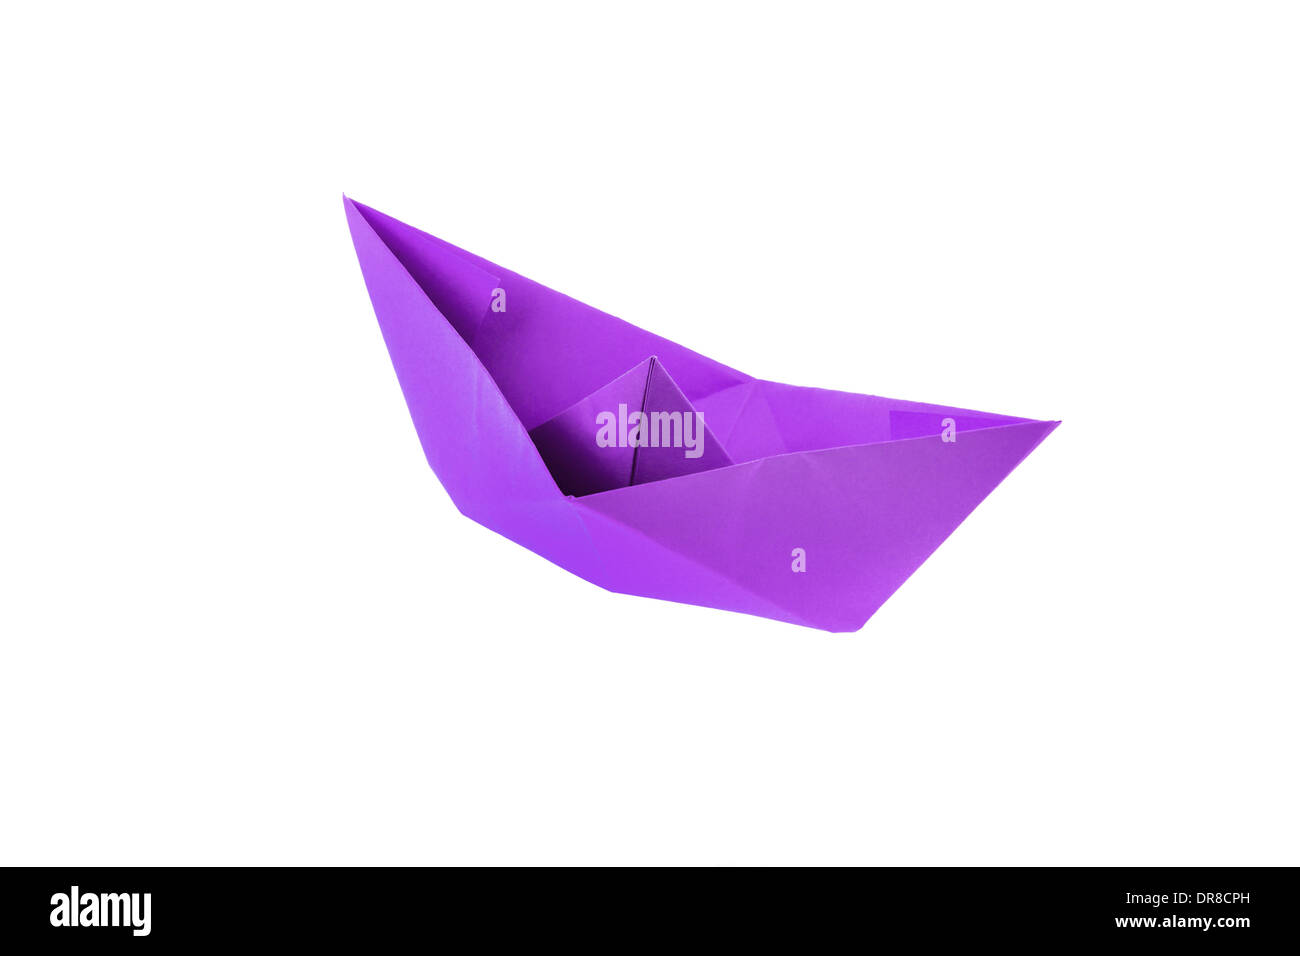 Magenta origami paper boat isolated on white - Stock Image